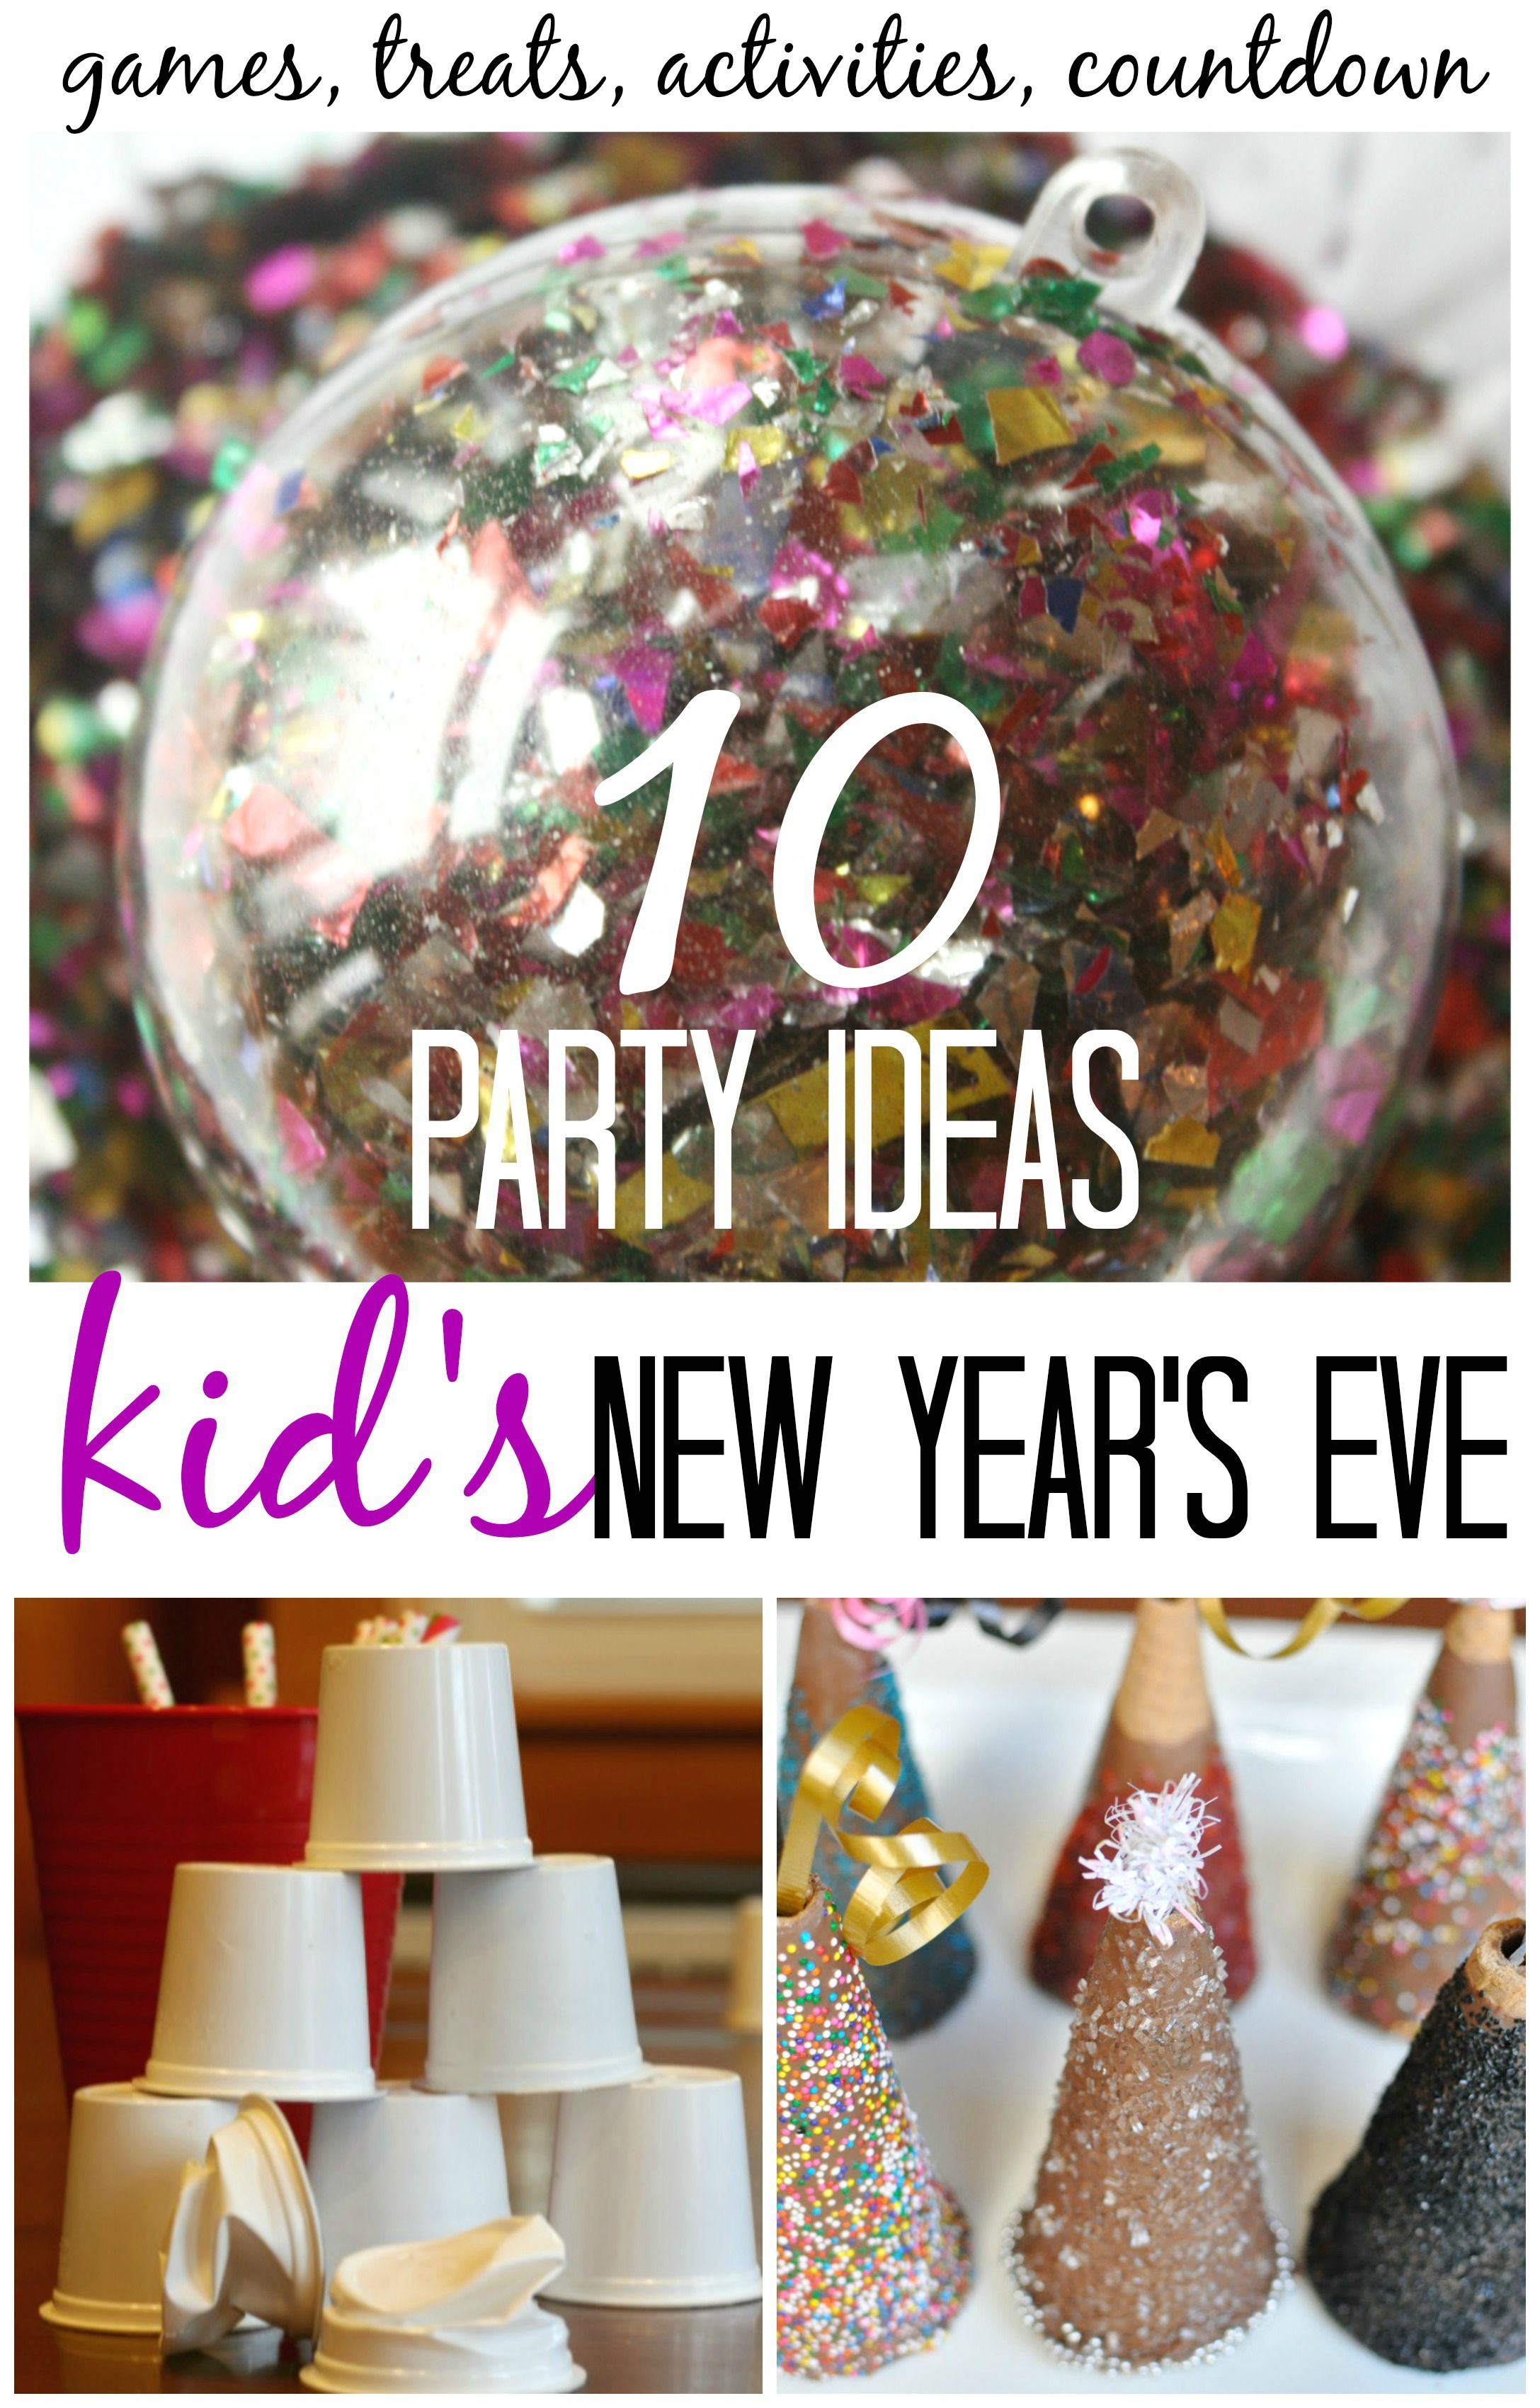 Kids new years eve party ideas and activities for new years aos kids new years eve party ideas and activities for new years forumfinder Images